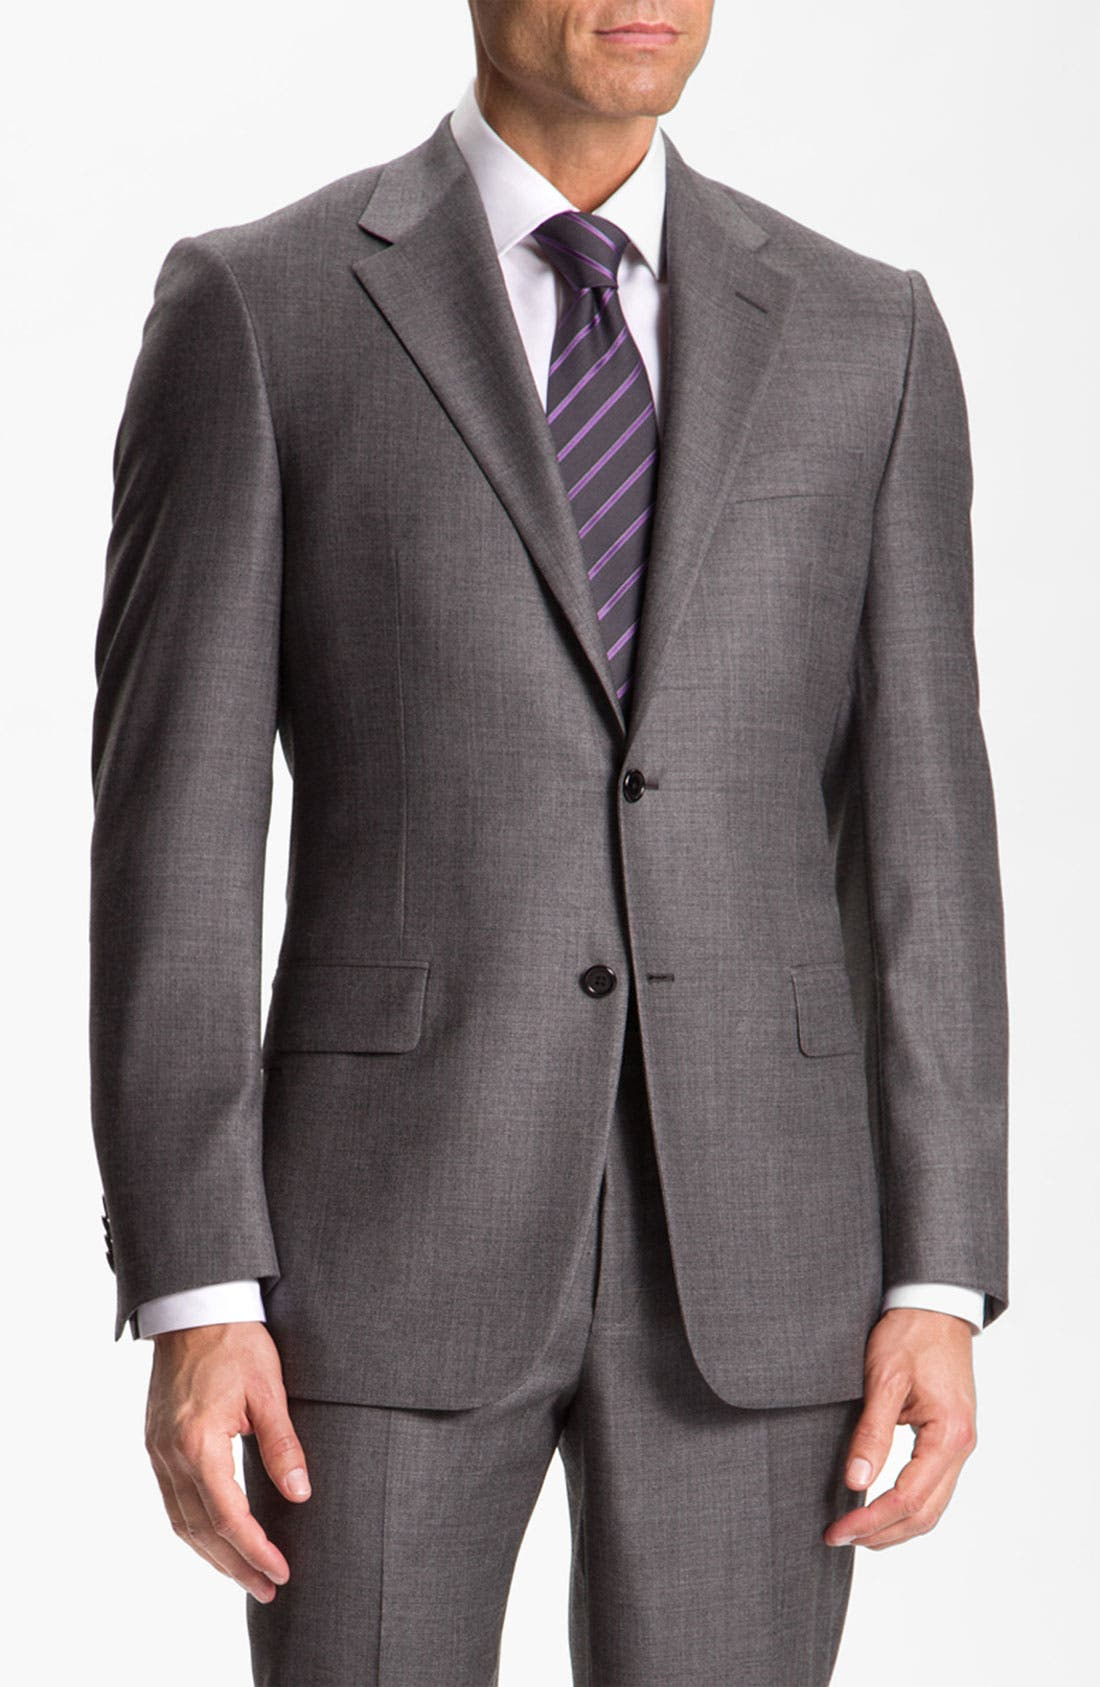 Main Image - Hickey Freeman Solid Wool Suit